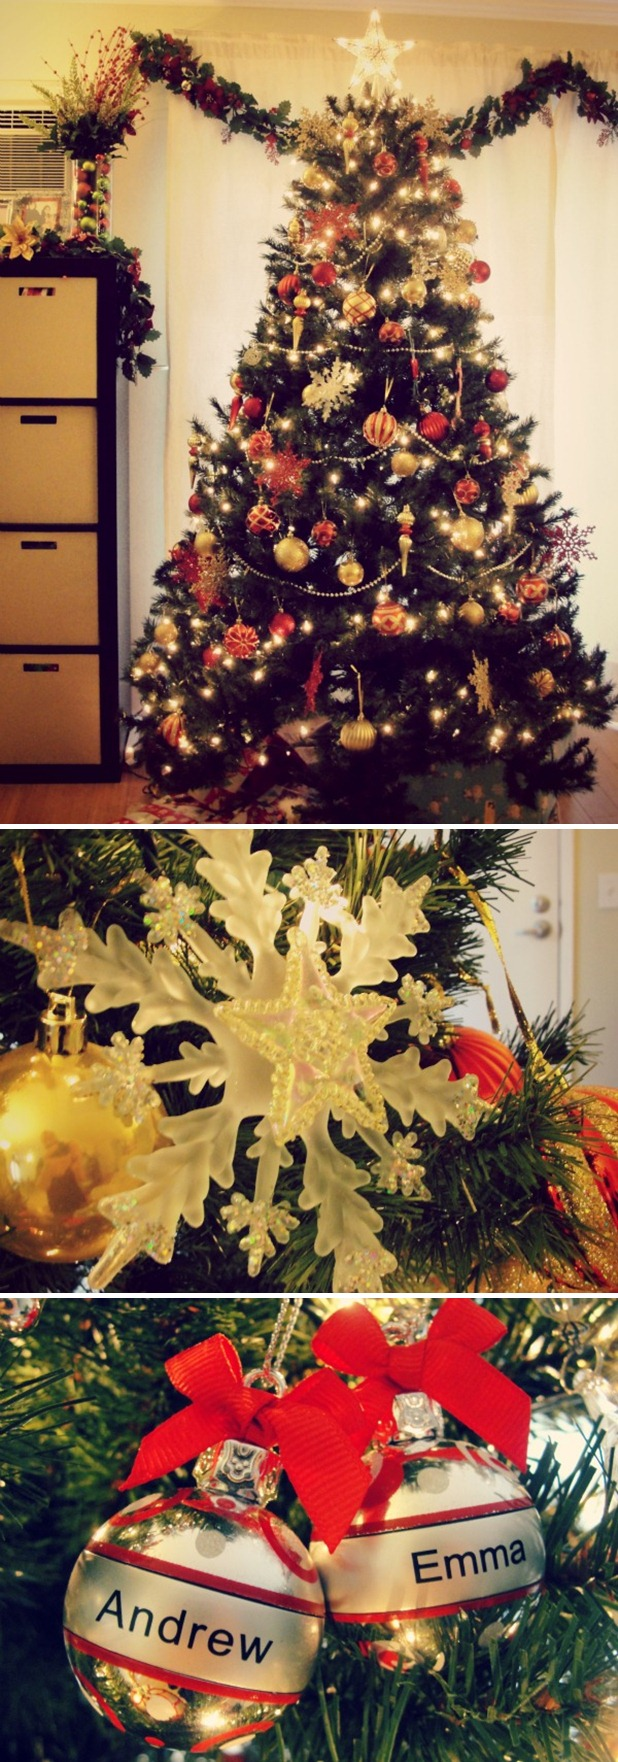 xmas tree collage